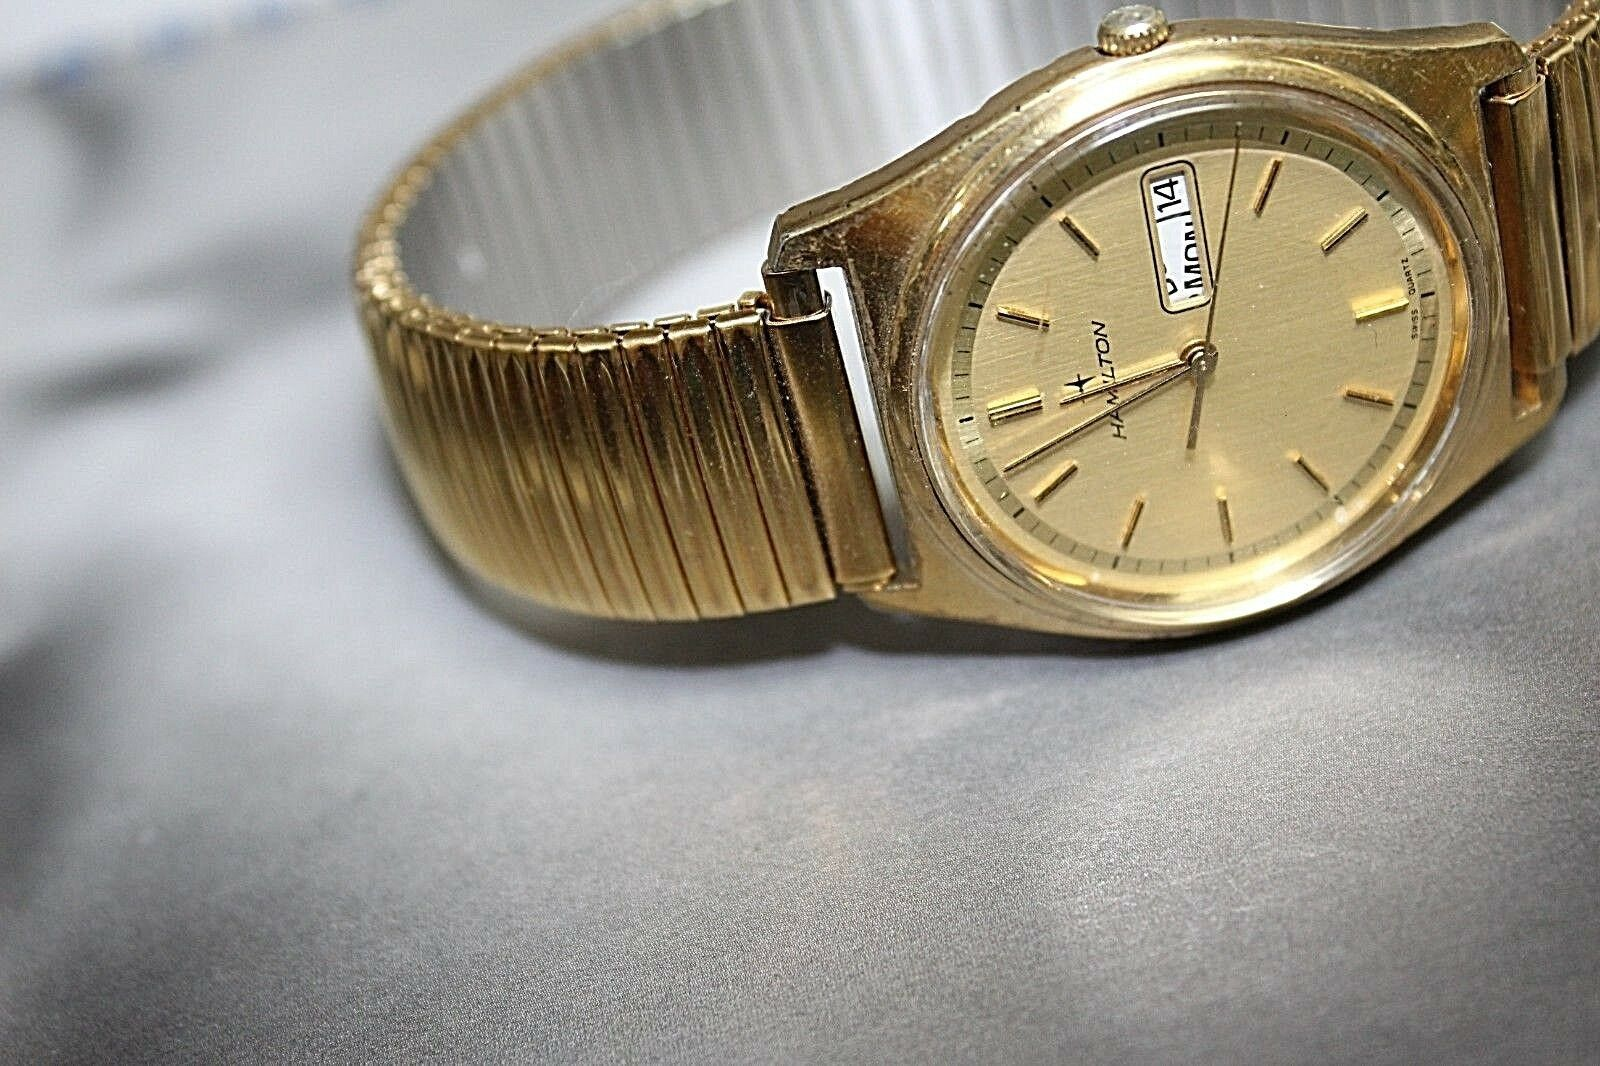 Hamilton quartz vintage day date gold plated nice watch image 2